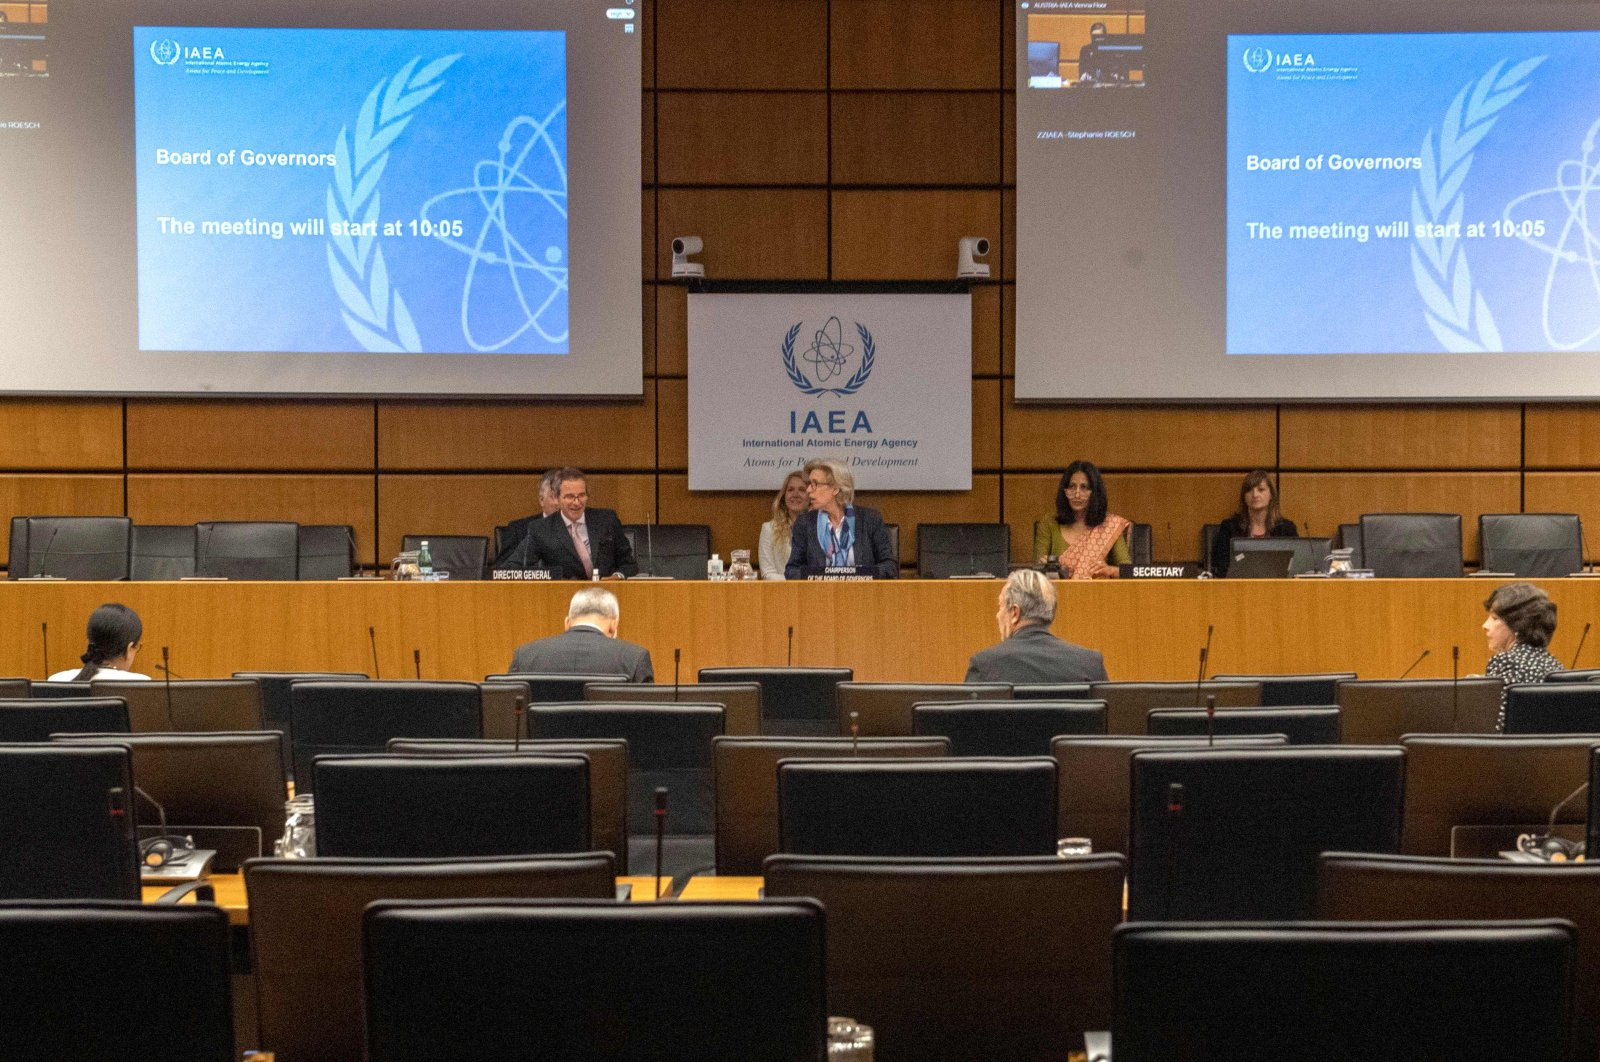 Rafael Grossi (L), director-general of the International Atomic Energy Agency (IAEA), opens a virtual meeting of the Board of Governors of the IAEA, due to coronavirus safety-related measures, at the agency's headquarters in Vienna, Austria, June 15, 2020. (AFP Photo)